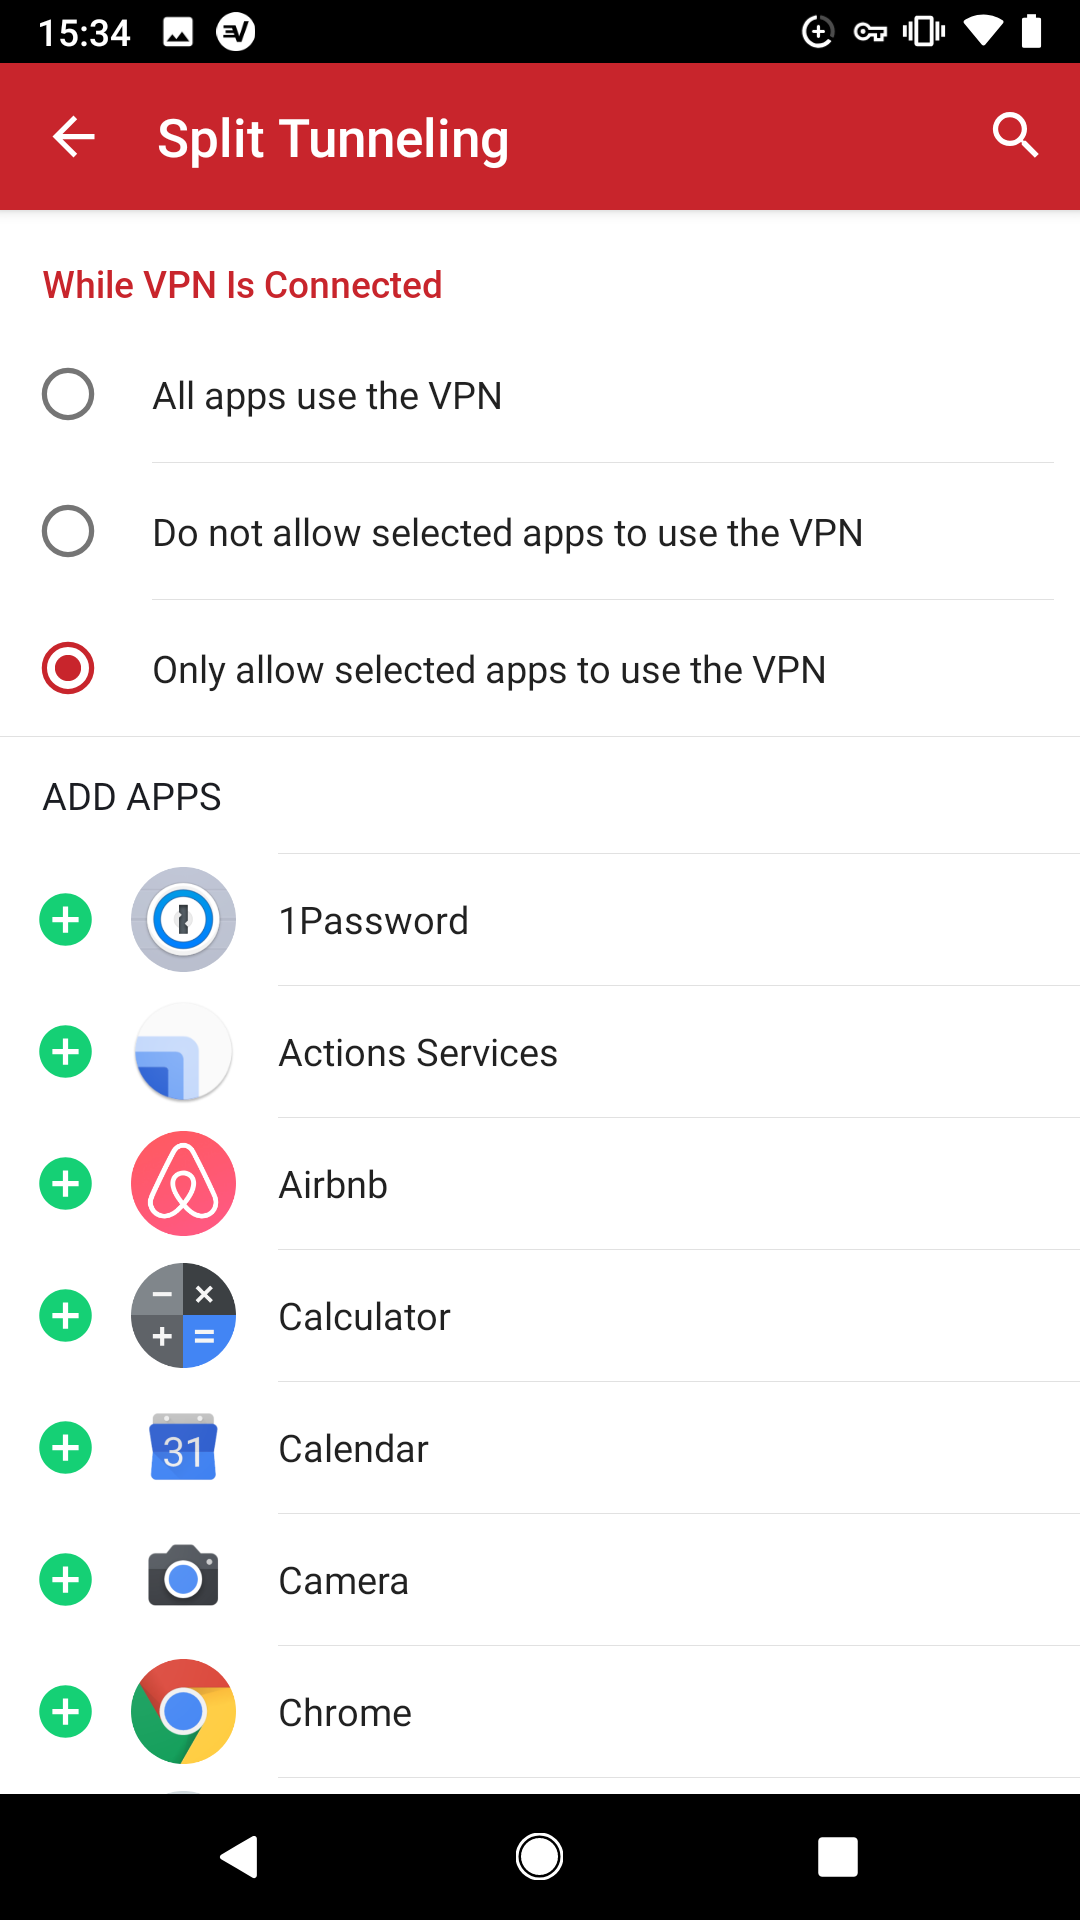 A screen shot of ExpressVPN split tunneling options on an Android phone.